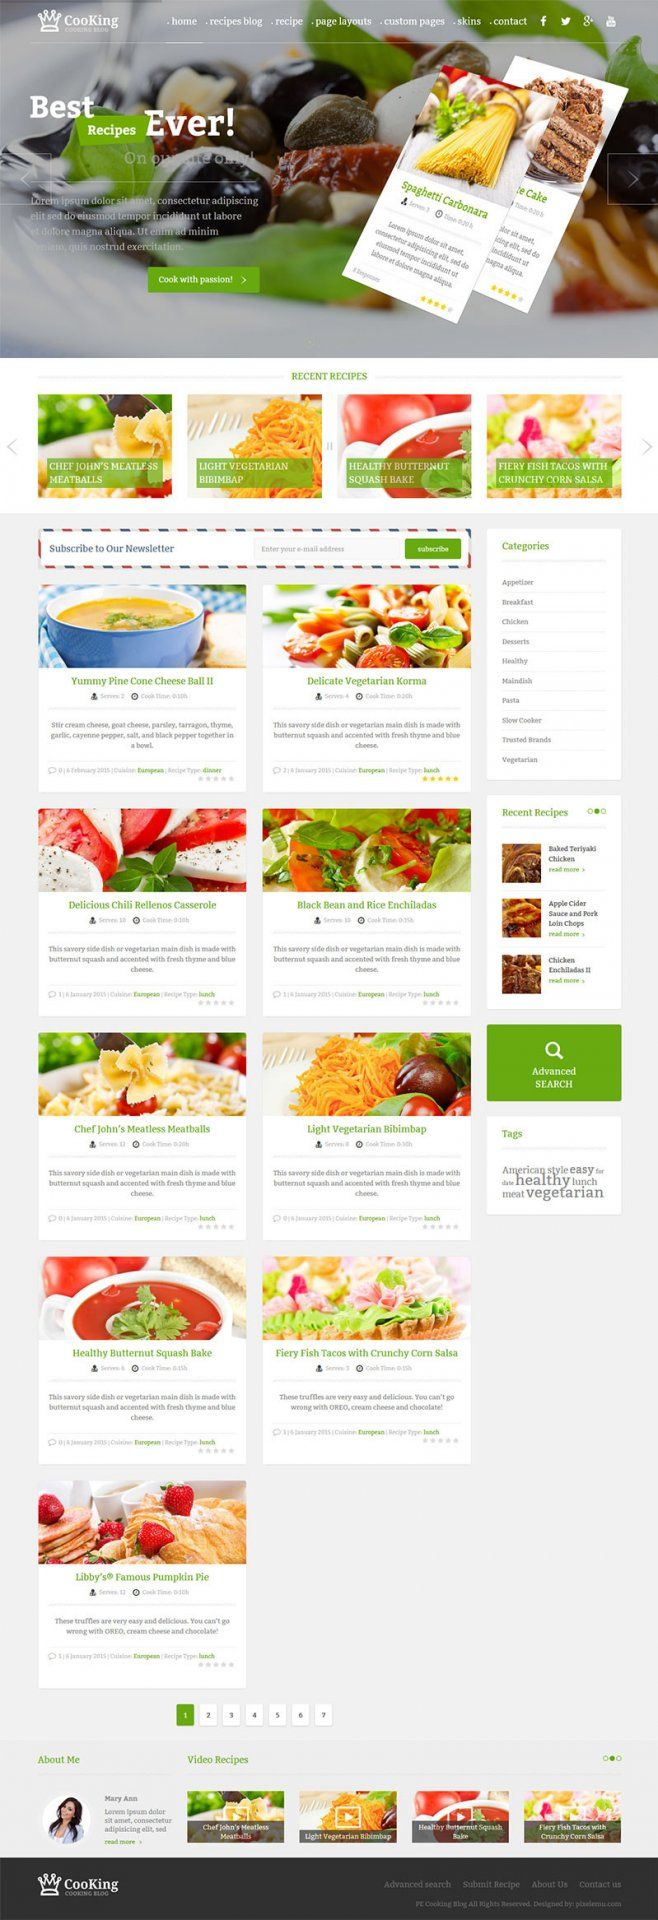 Cooking Blog WordPress theme Example with full-feature full-width header #blog #cooking #food #recipes #wordpress #theme https://www.pixelemu.com/wordpress-themes/i/1-cooking-blog